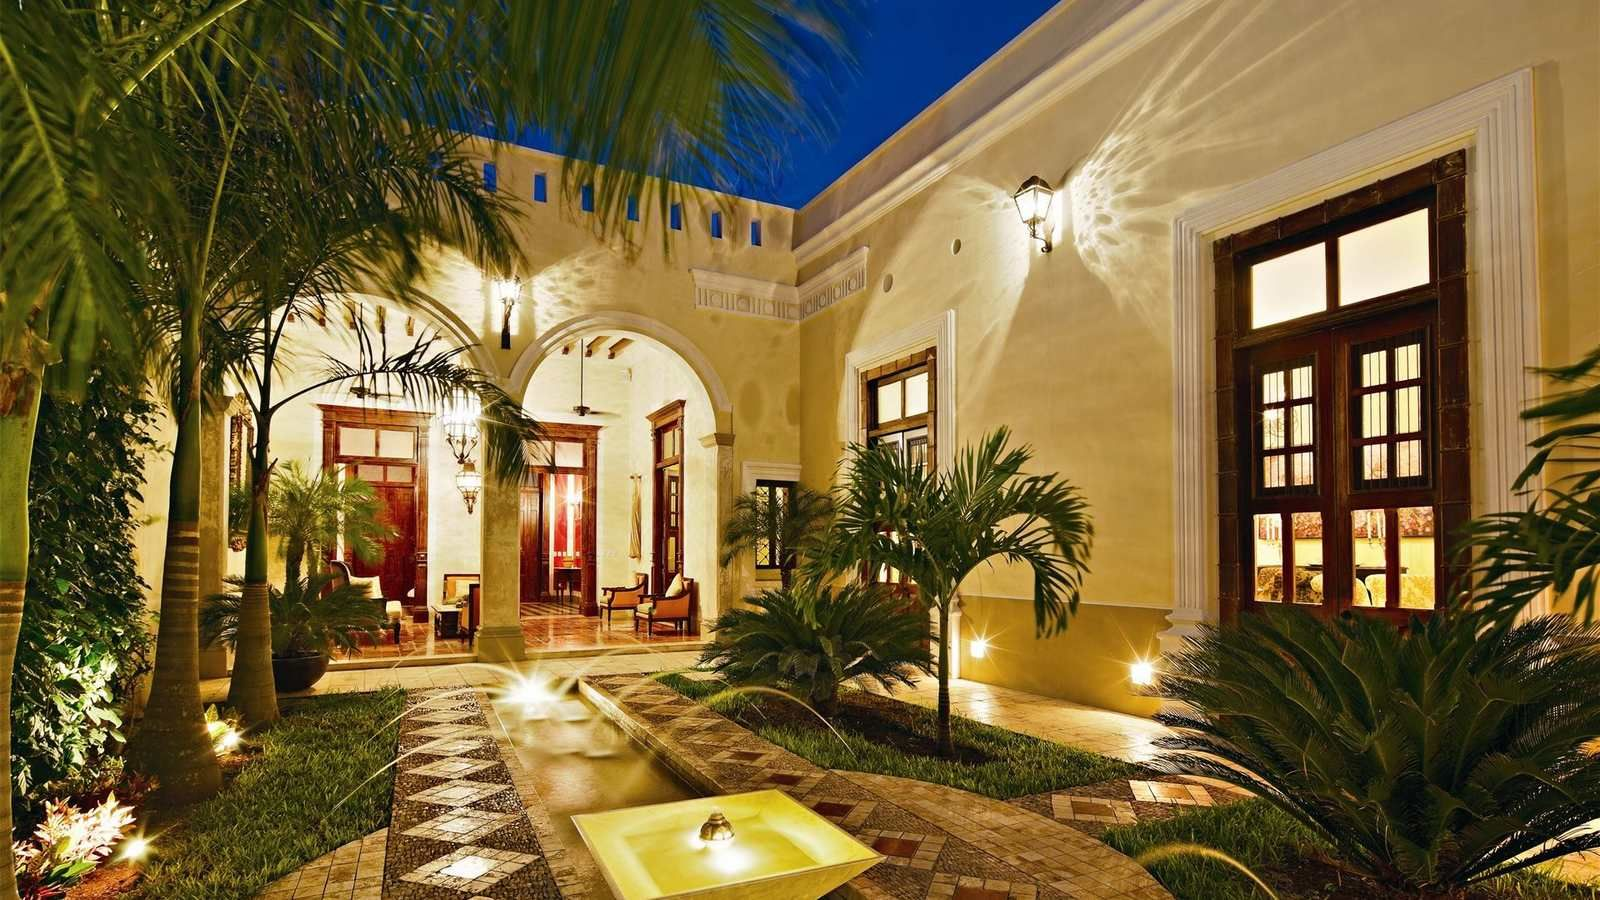 Casa lecanda boutique hotel merida mexico travel for Boutique hotel yucatan